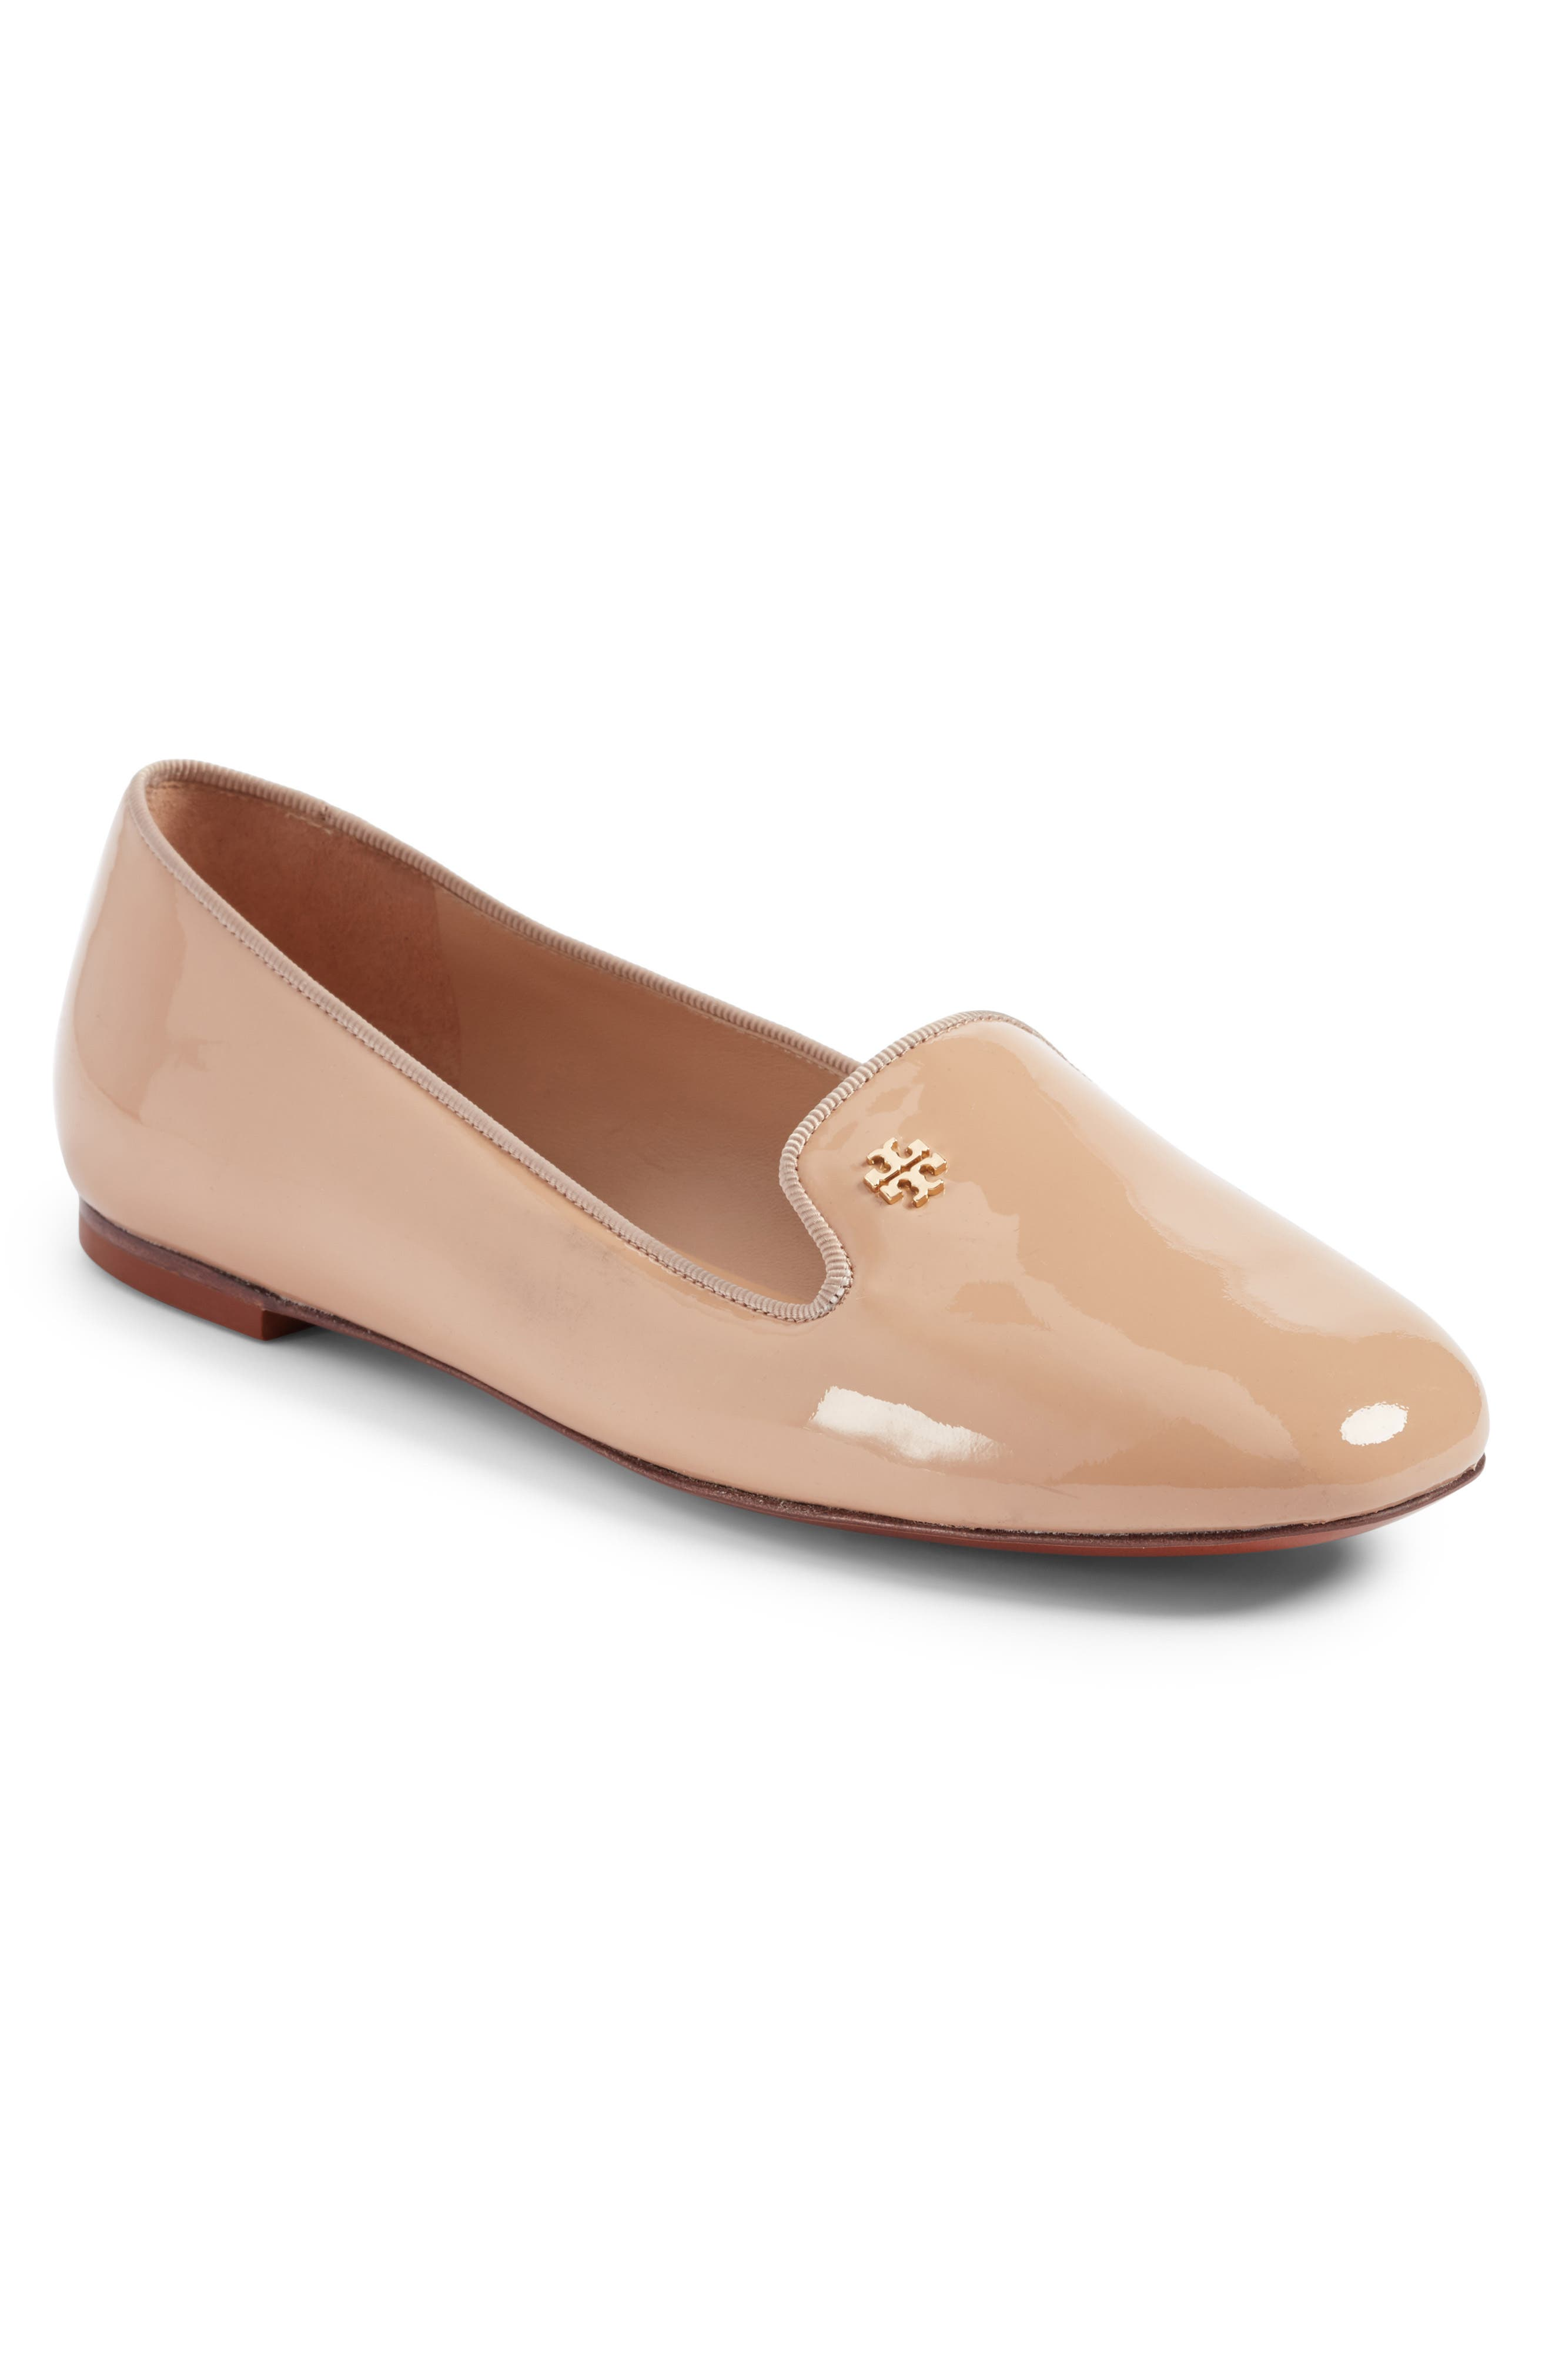 Alternate Image 1 Selected - Tory Burch Samantha Loafer (Women)